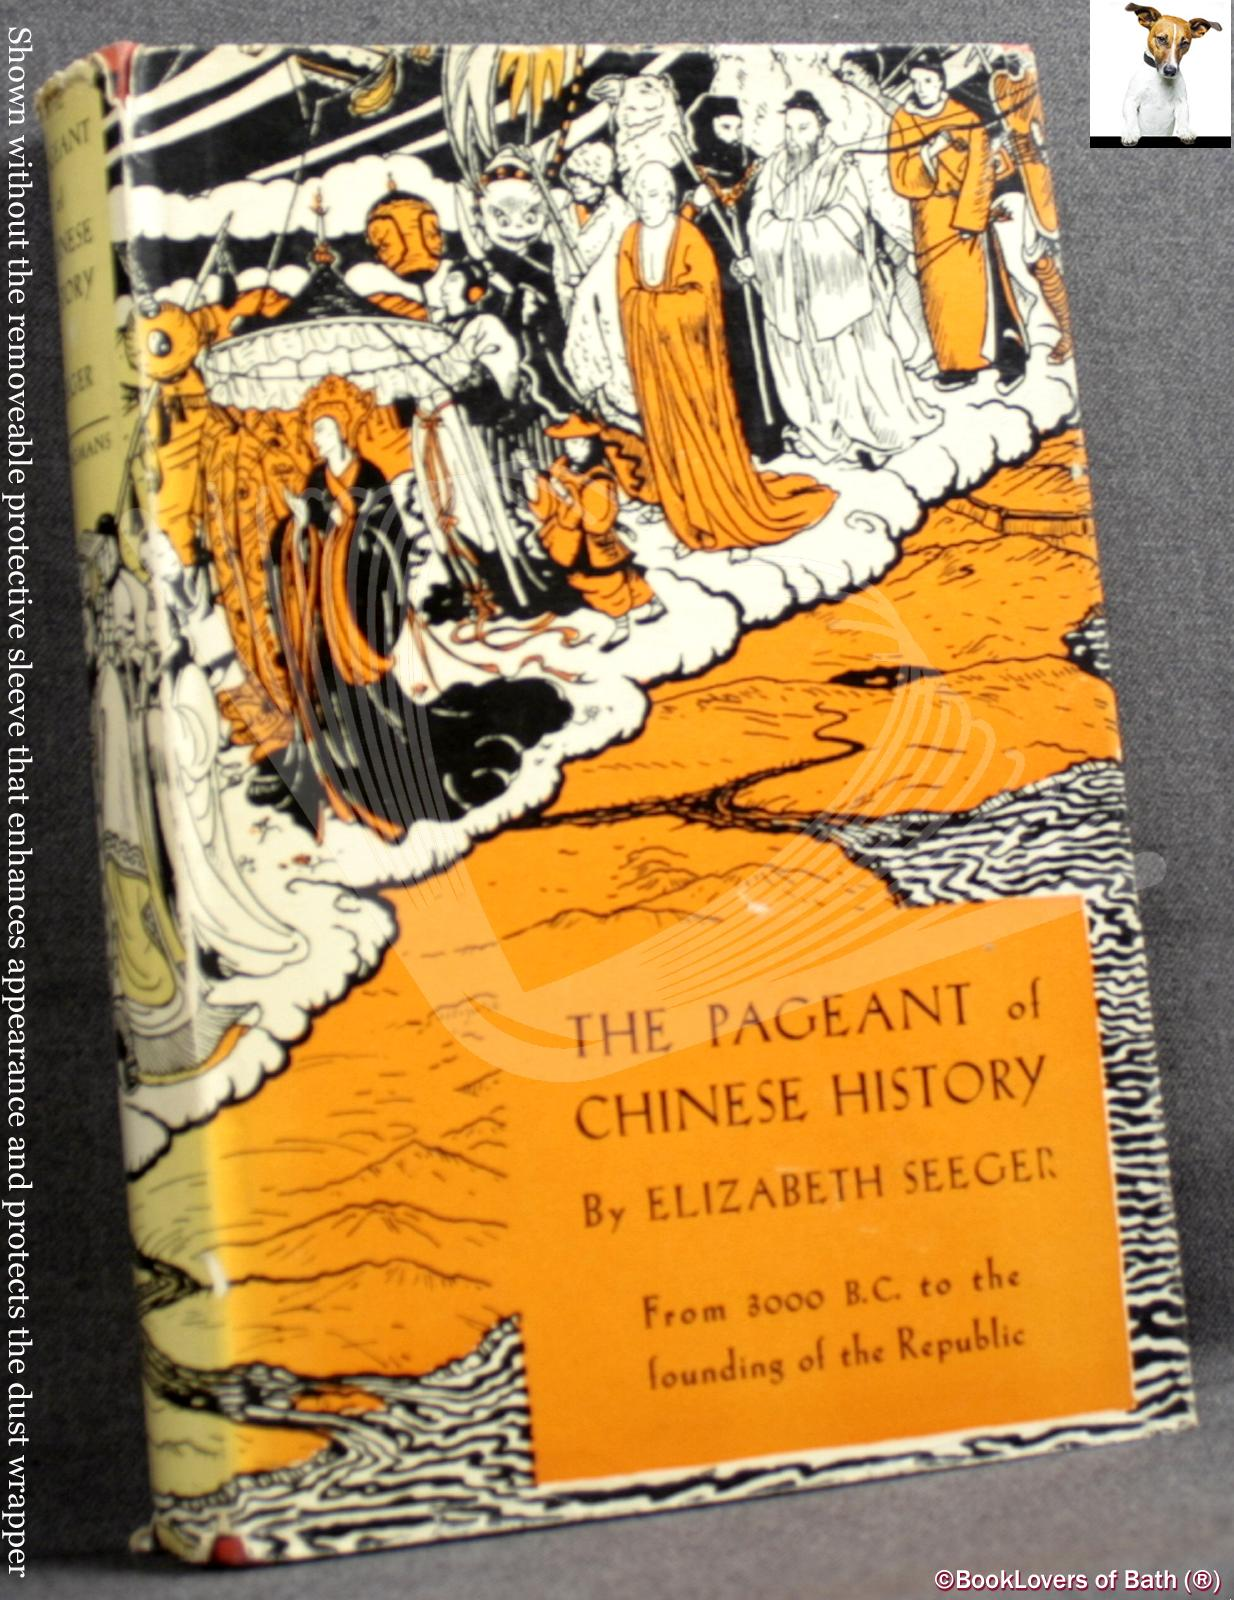 The Pageant Of Chinese History - Elizabeth Seeger